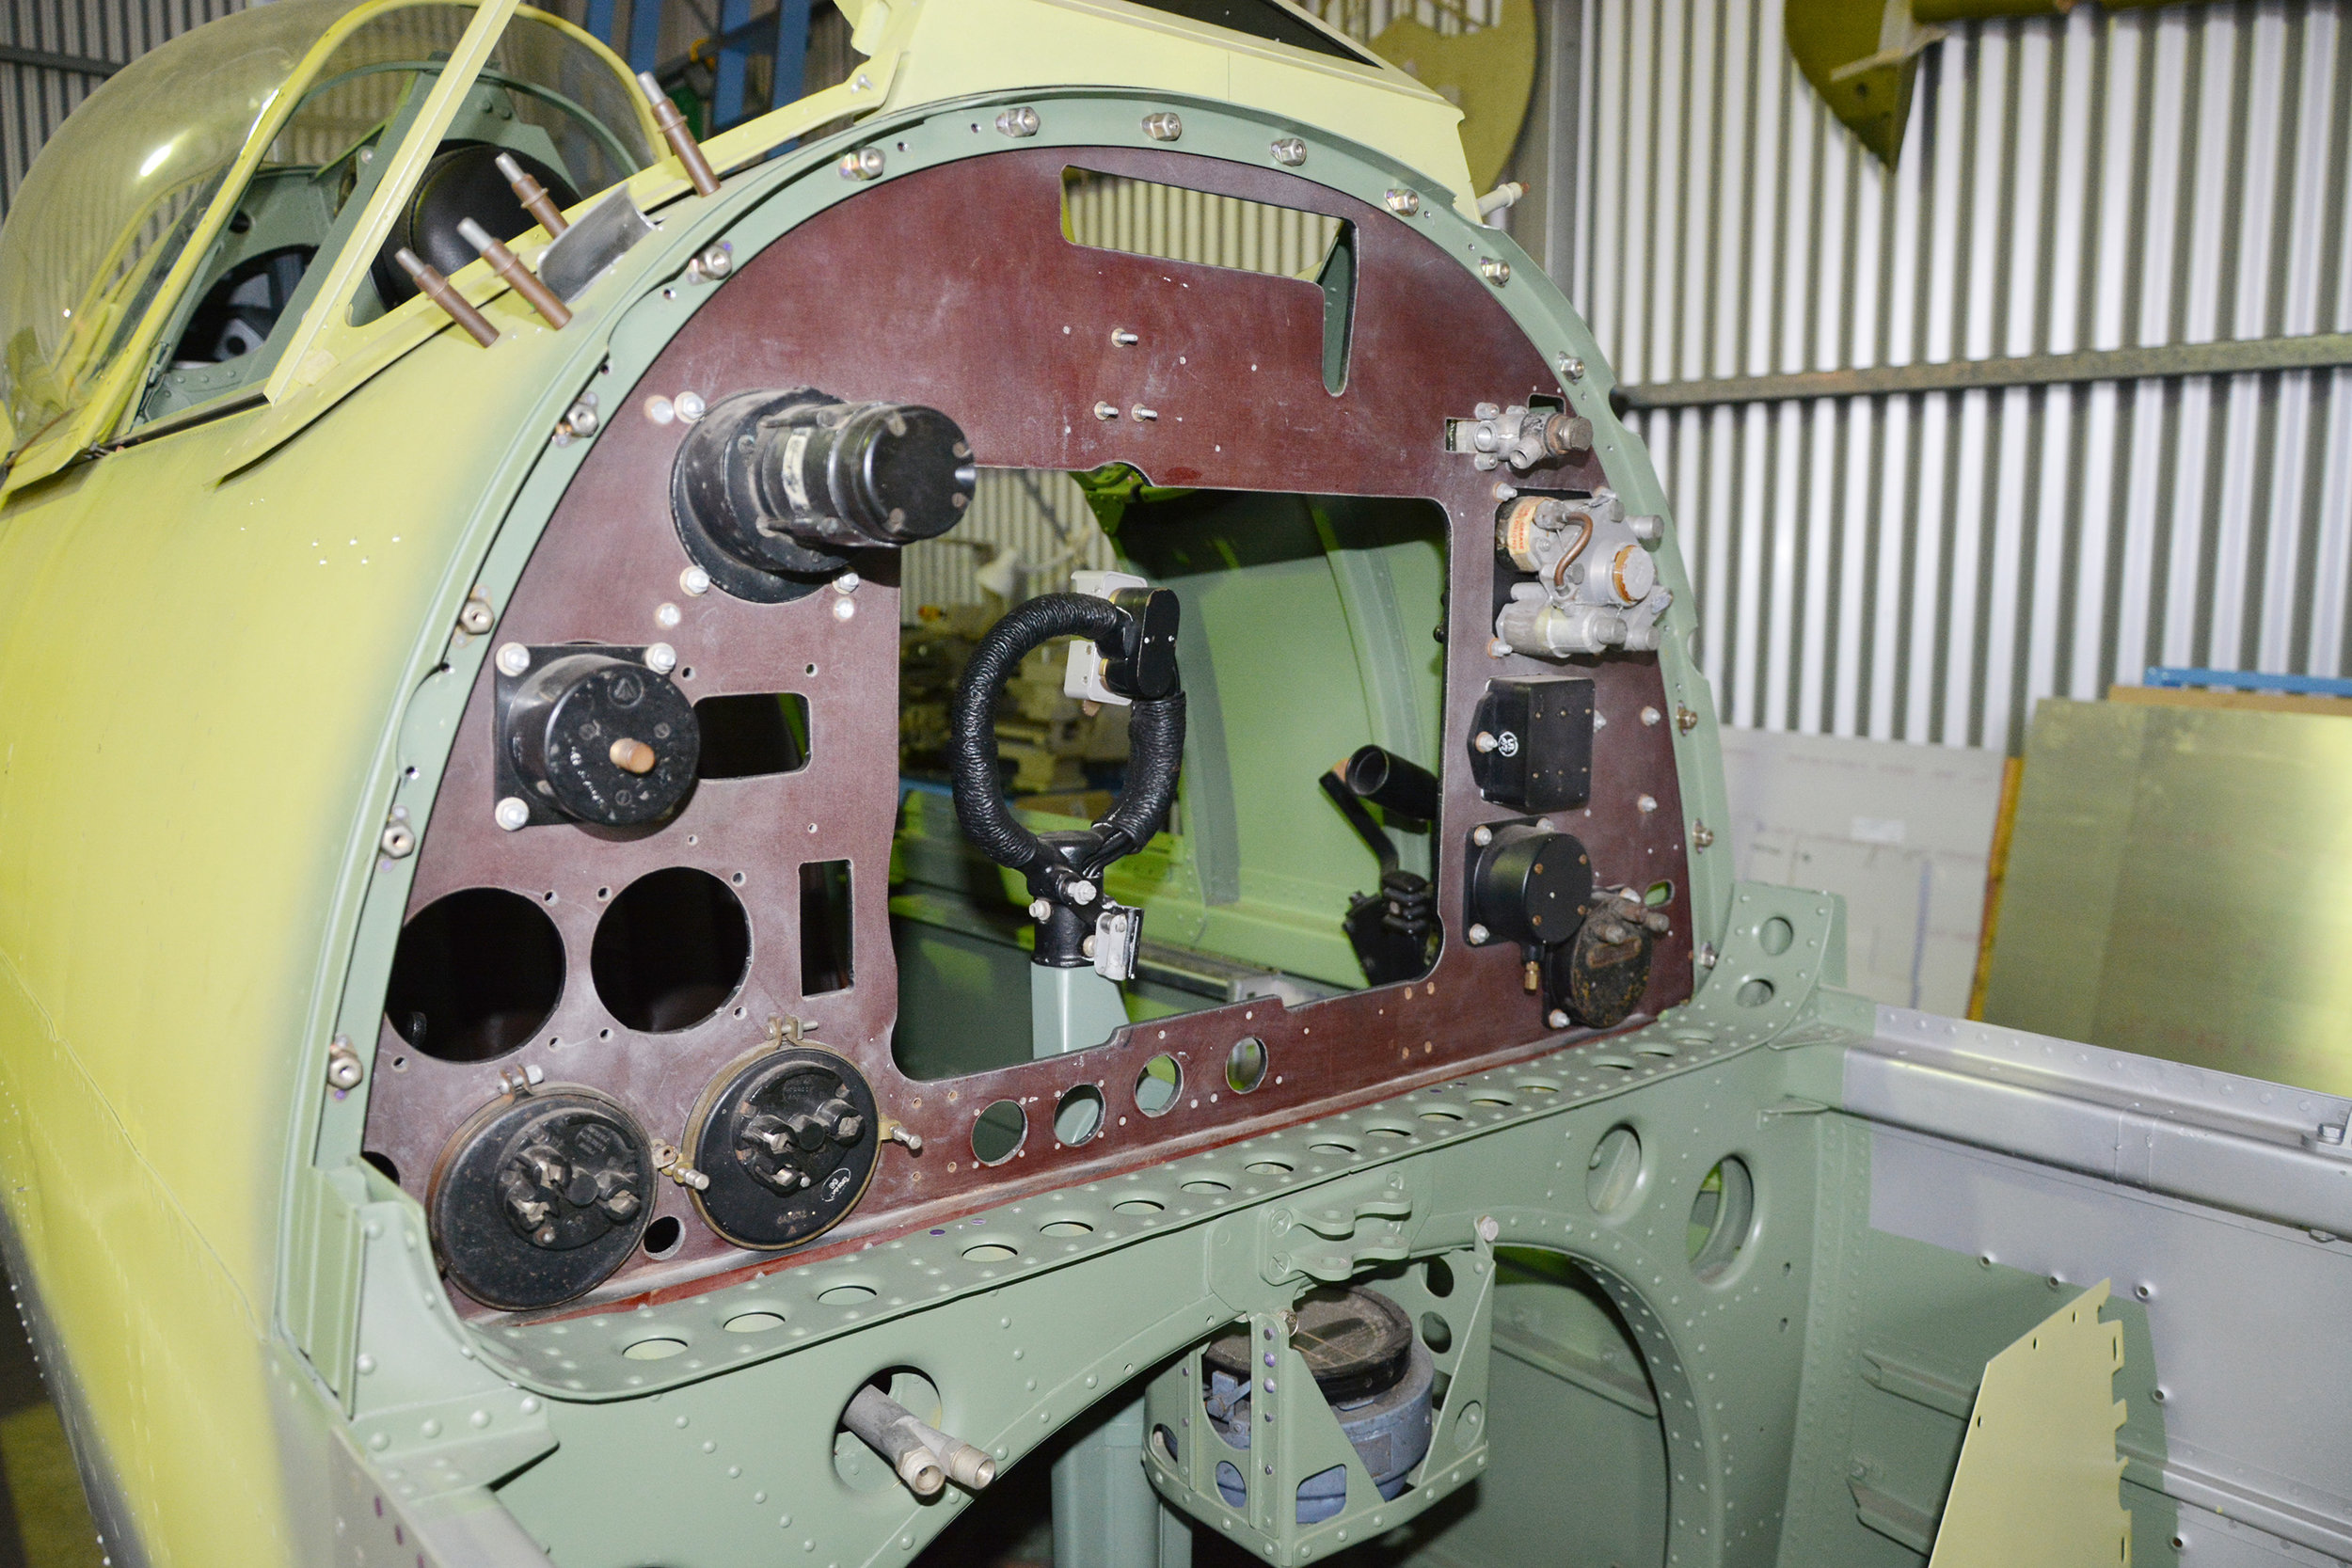 Fuel tank bay showing the back of the instrument panel